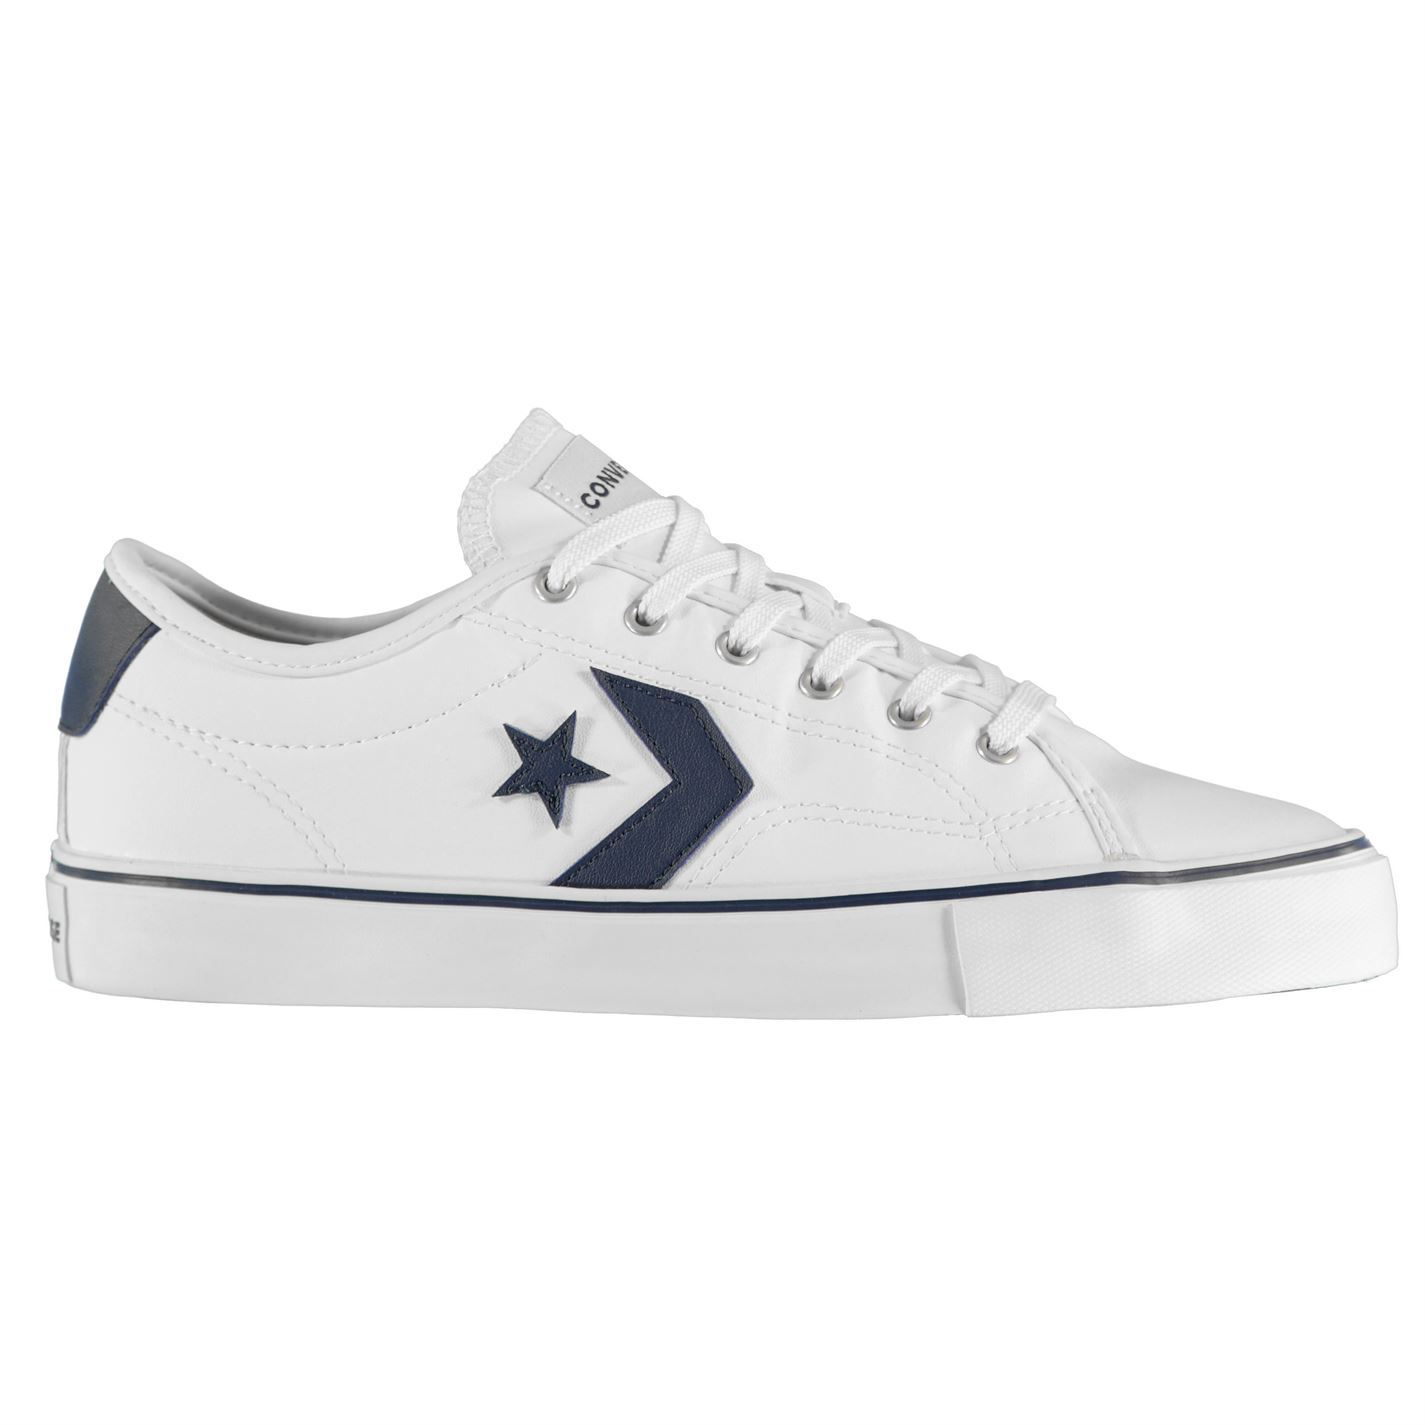 Converse-Ox-Replay-Low-Baskets-Pour-Homme-Chaussures-De-Loisirs-Chaussures-Baskets miniature 11